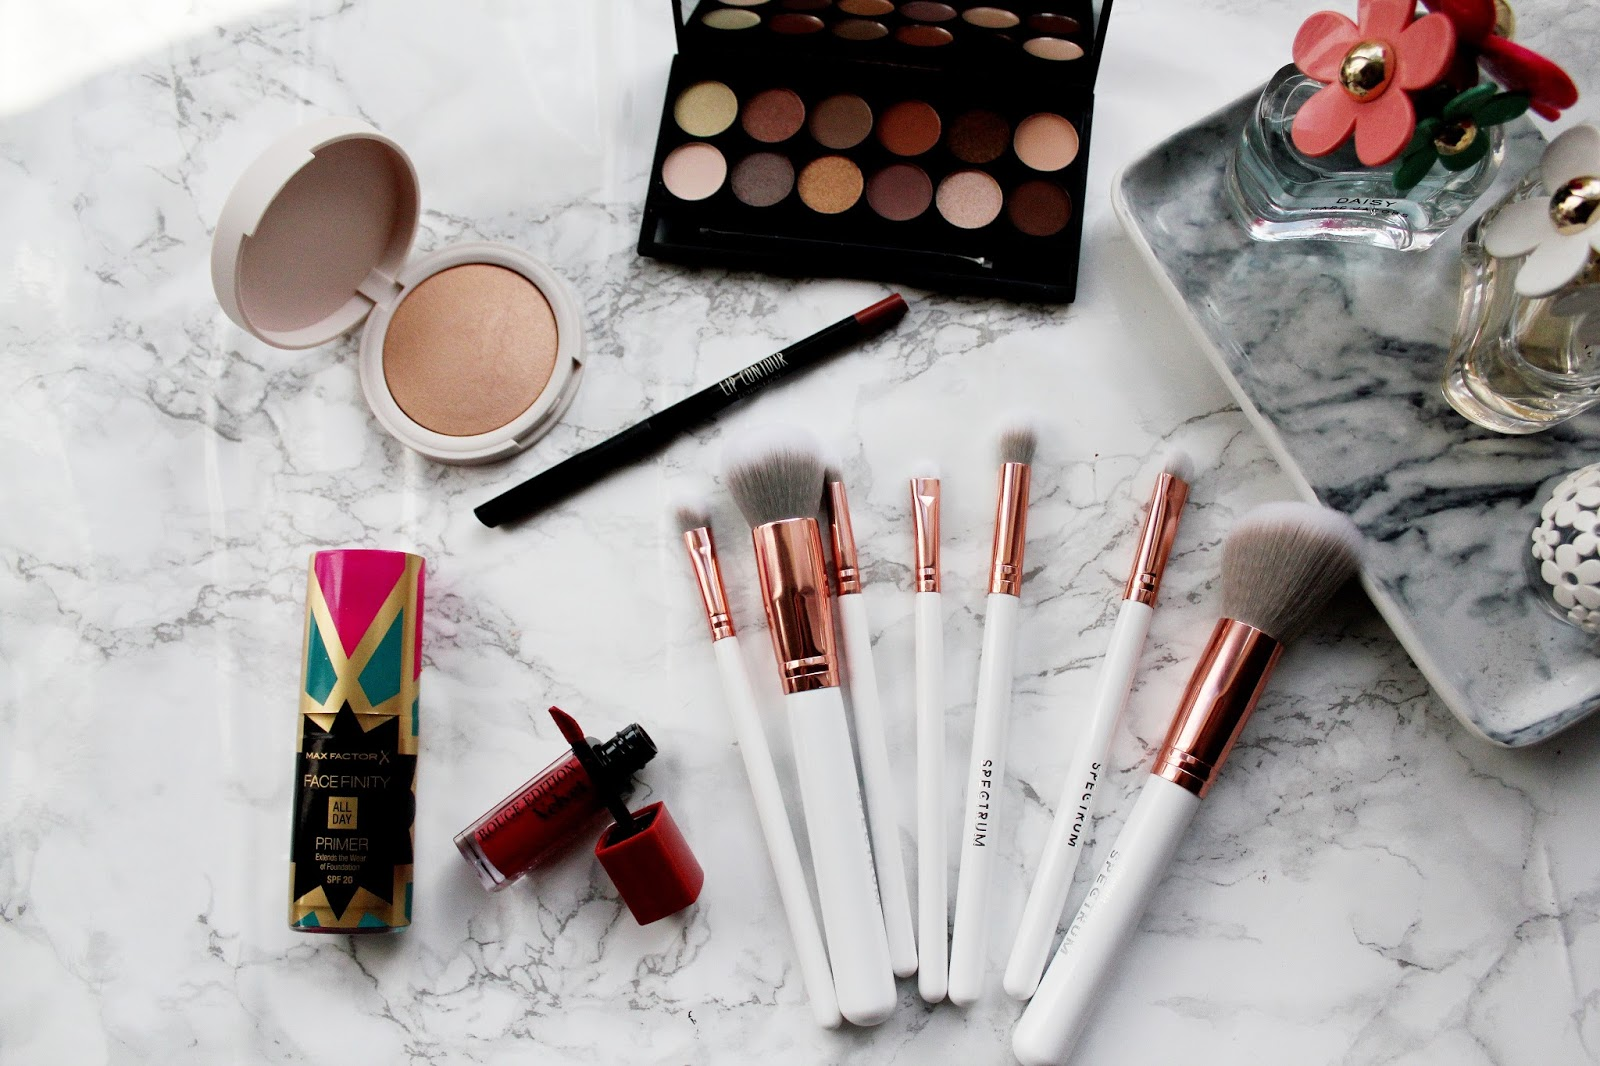 Lifestyle: 30 Beauty Blog Post Ideas